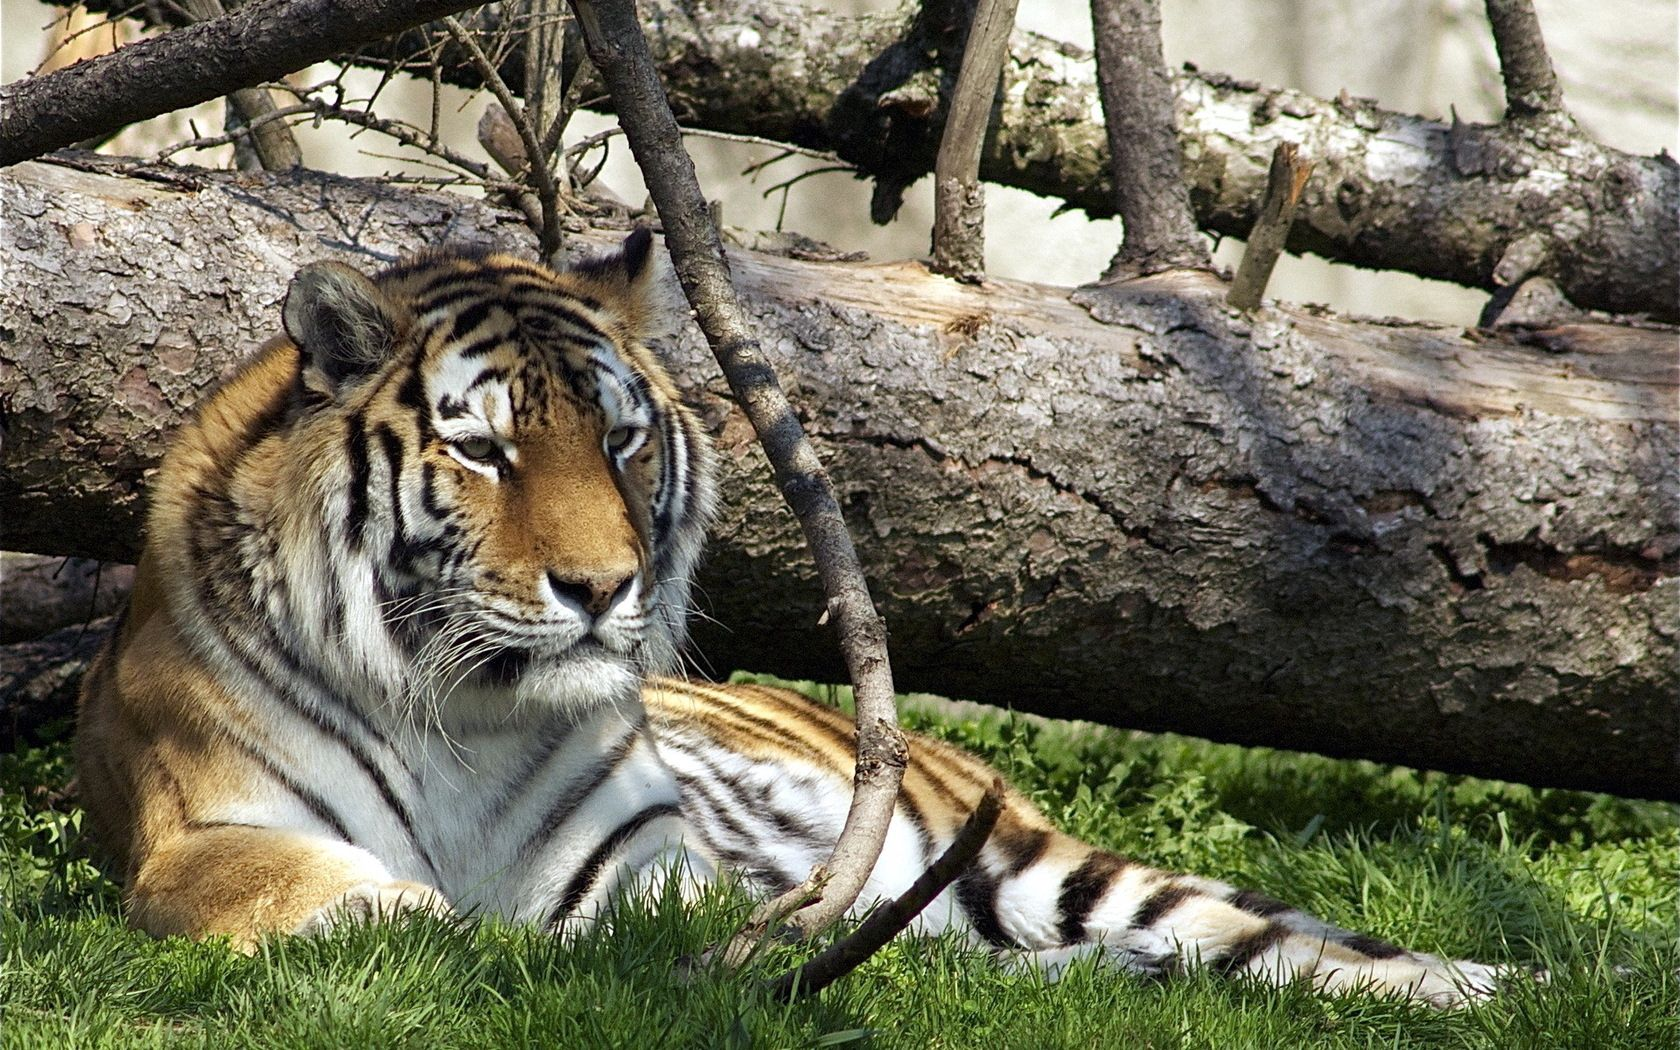 146669 download wallpaper Animals, Tiger, Predator, Big Cat, Grass, To Lie Down, Lie screensavers and pictures for free